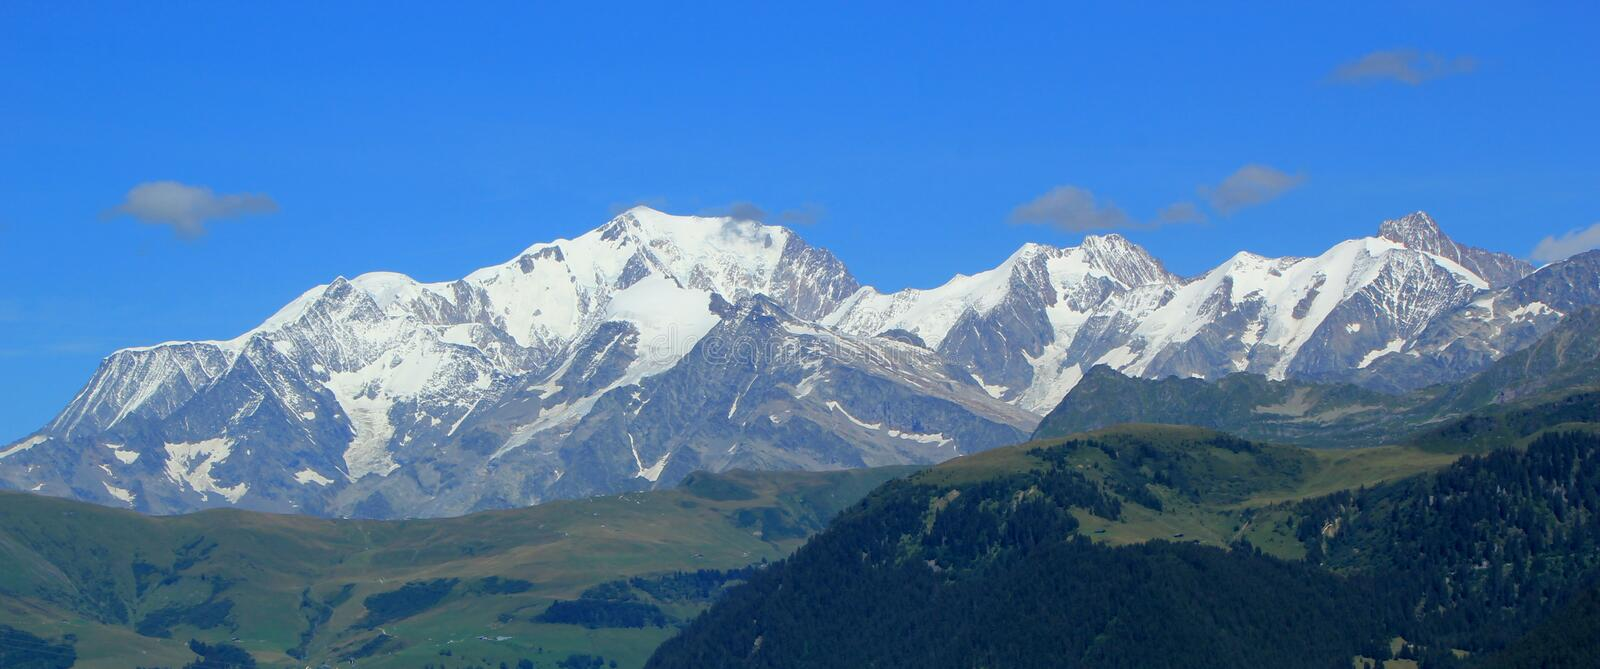 Mont-Blanc mountains by summer, France stock photos